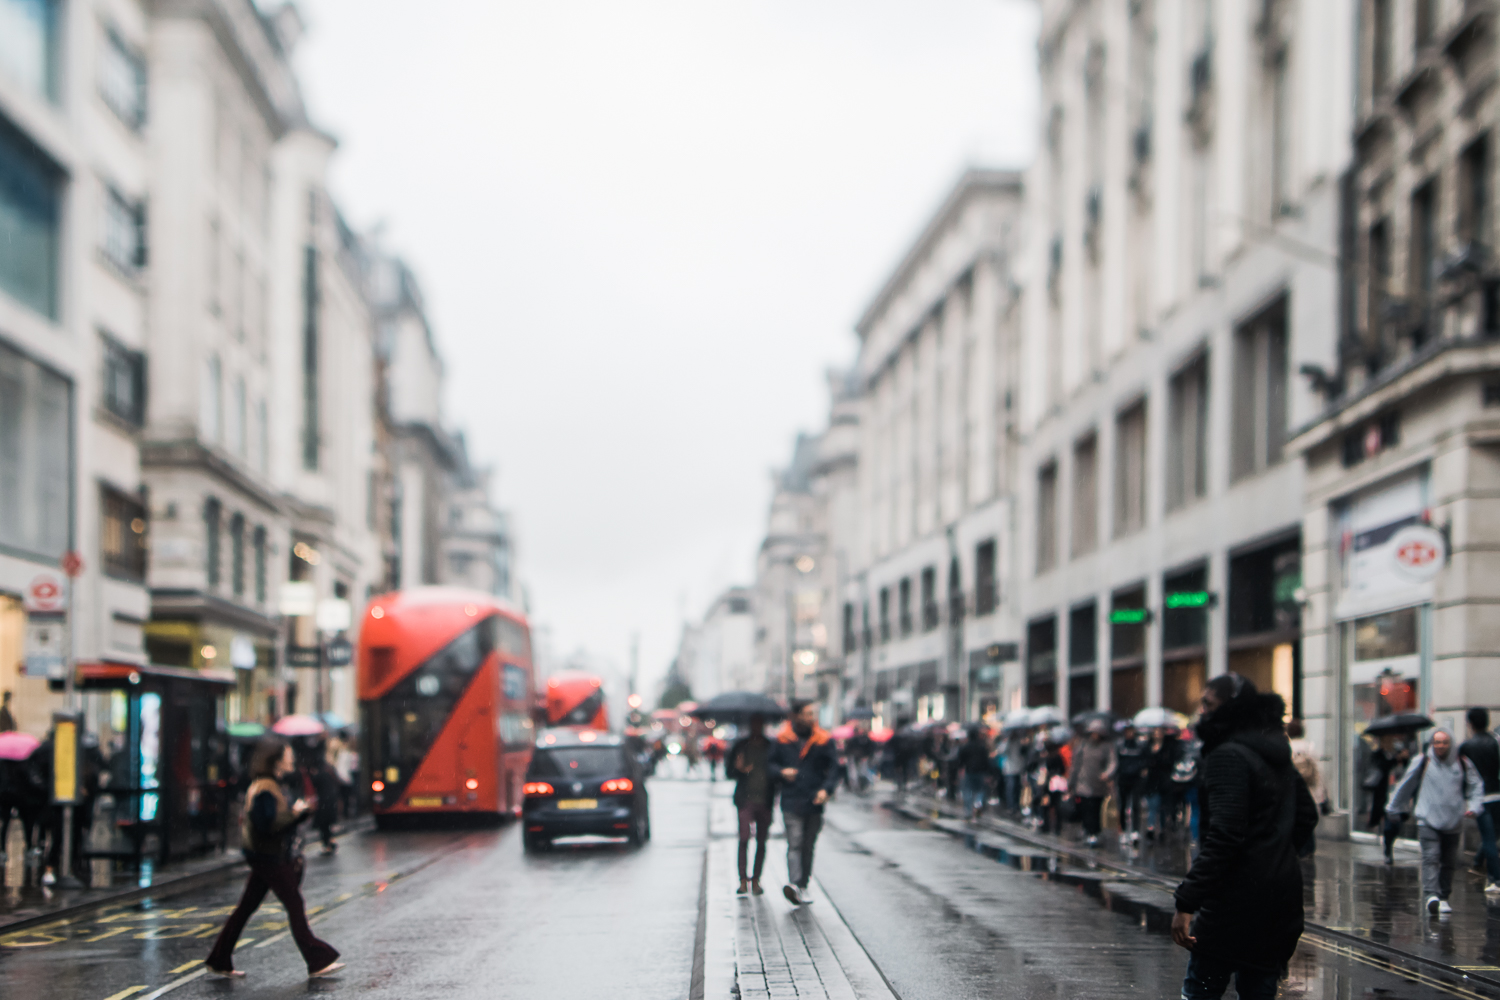 Freelensed photograph of London Oxford Circus in the rain